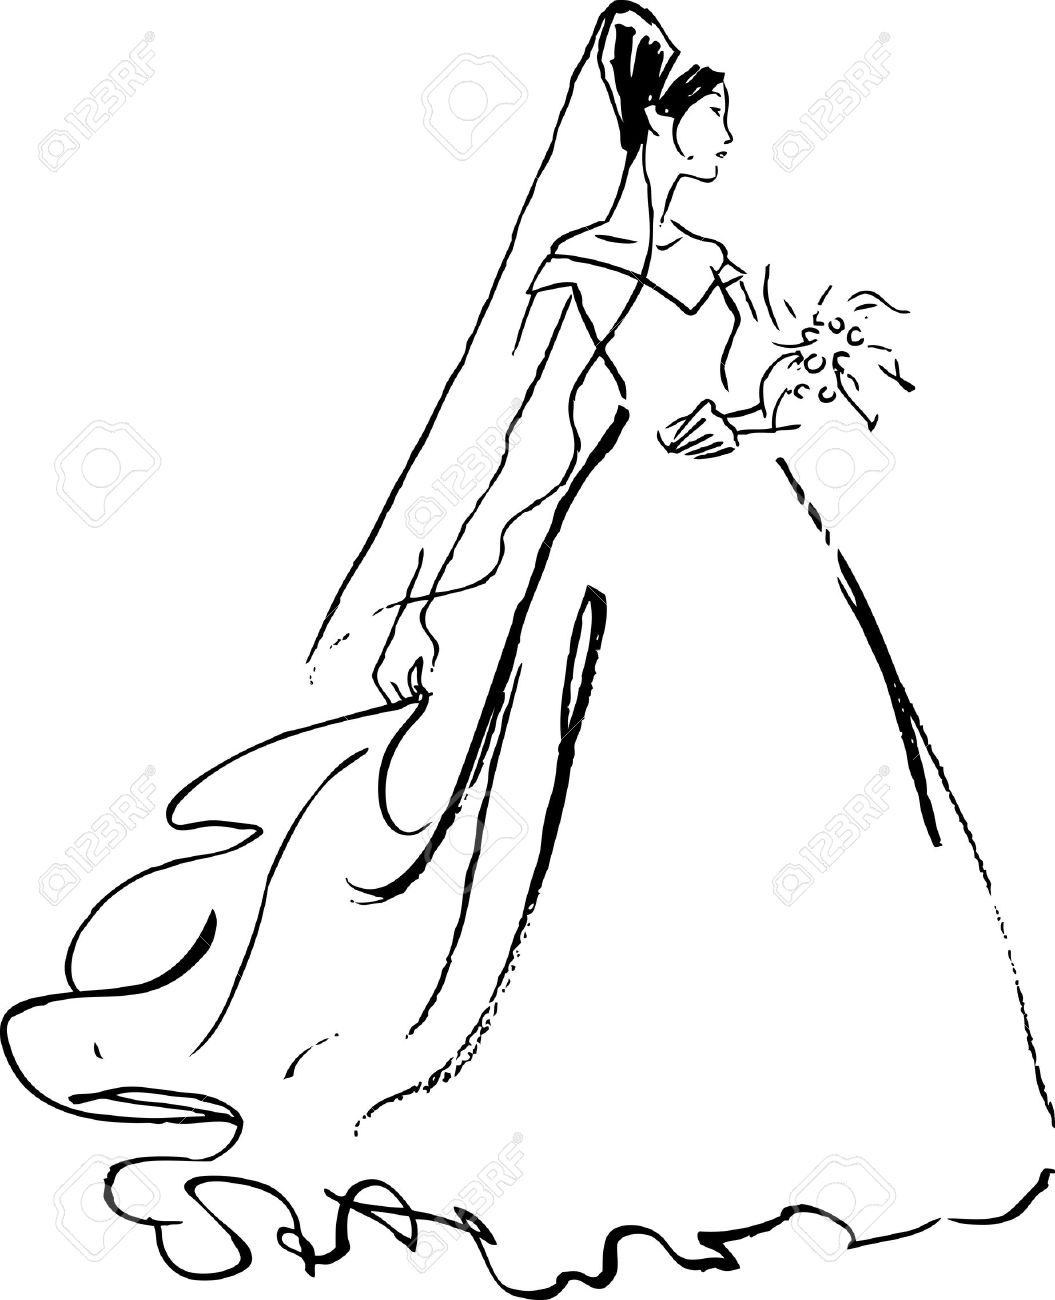 1055x1300 Bride Drawing Black Over White Royalty Free Cliparts, Vectors,